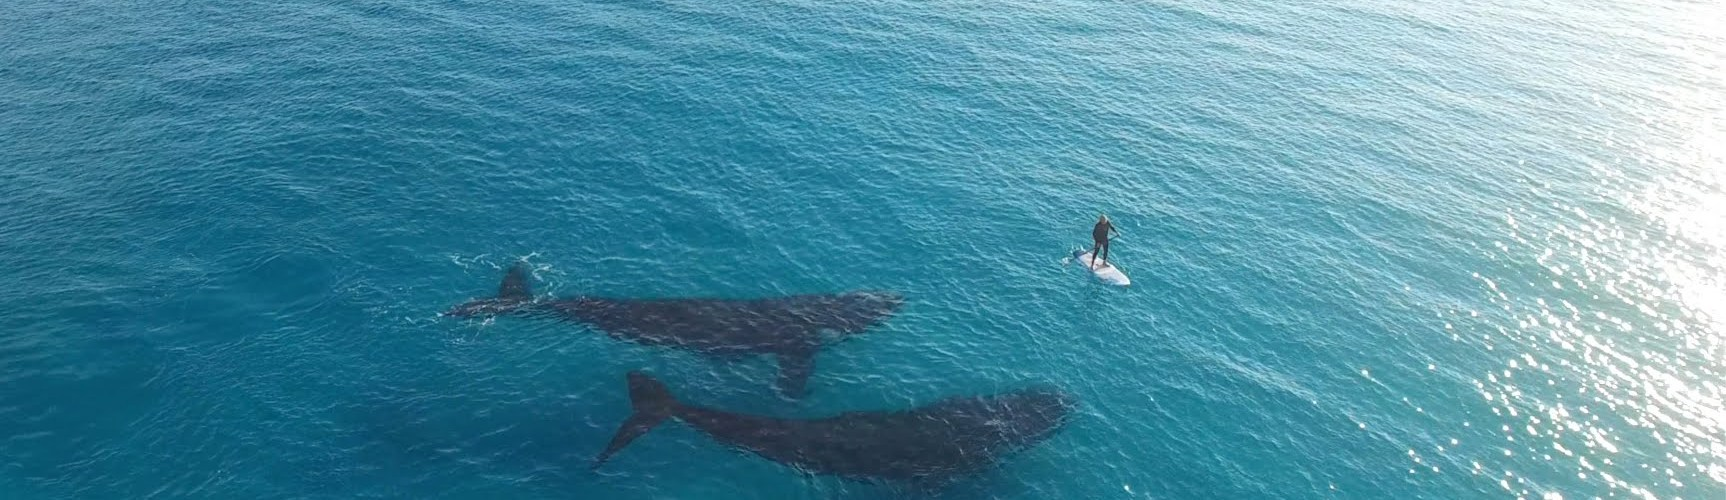 Stunning Drone Footage Of A Paddleboarder's Encounter With Two Whales